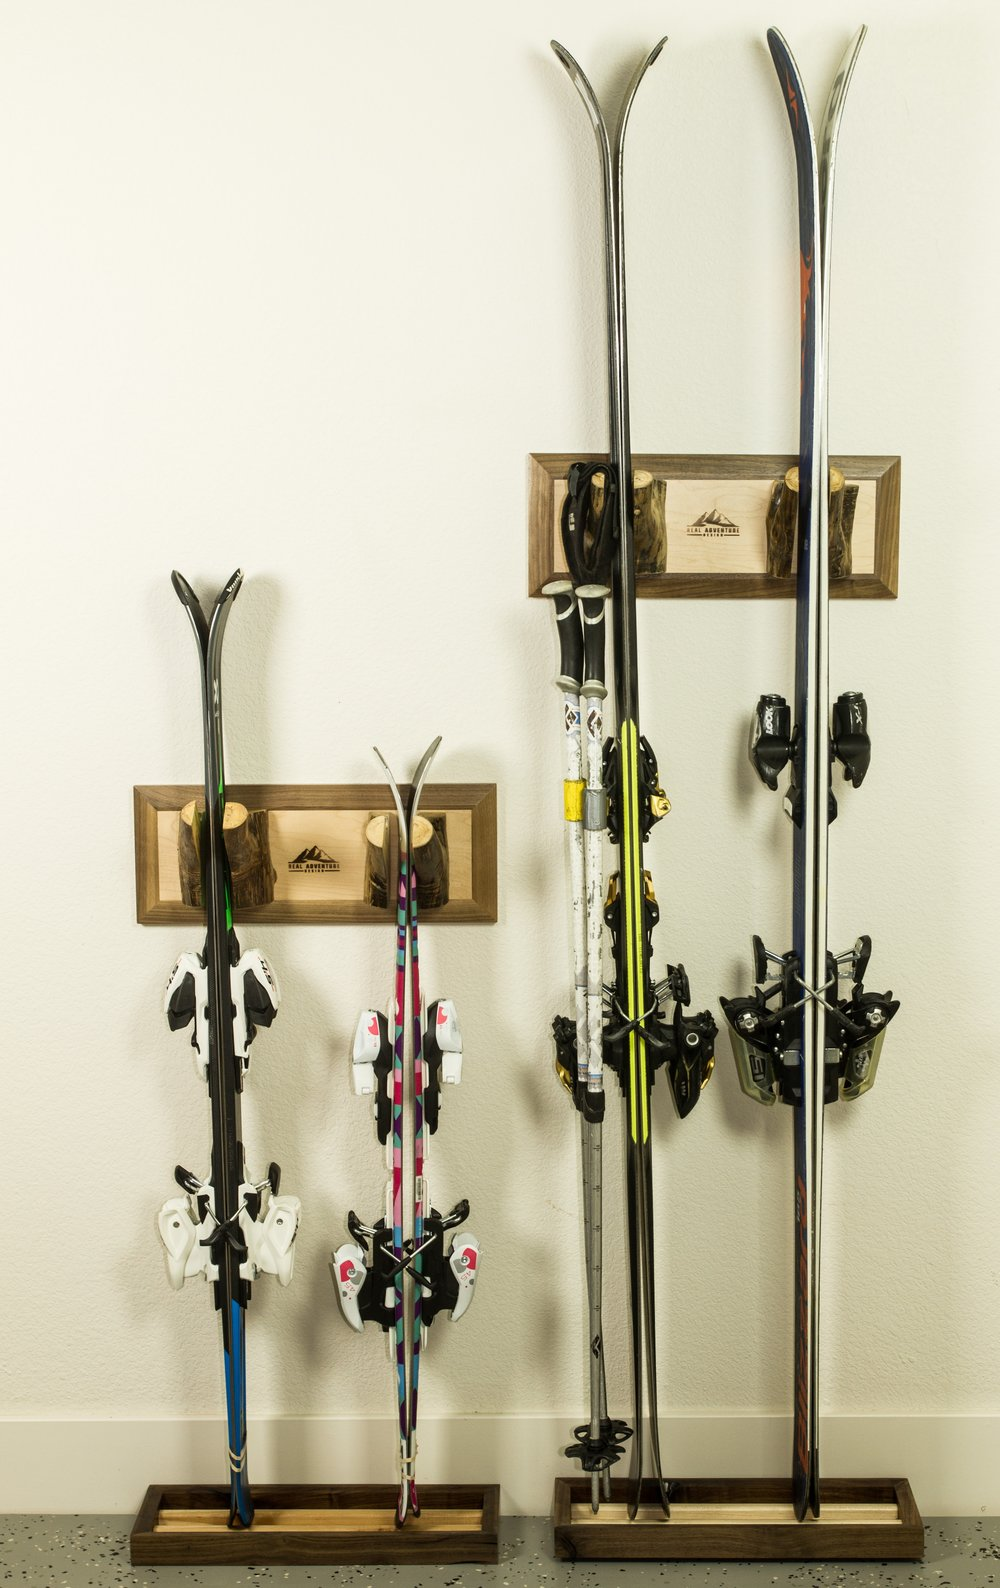 For kids skis, mount one rack lower and move it up as they grow.